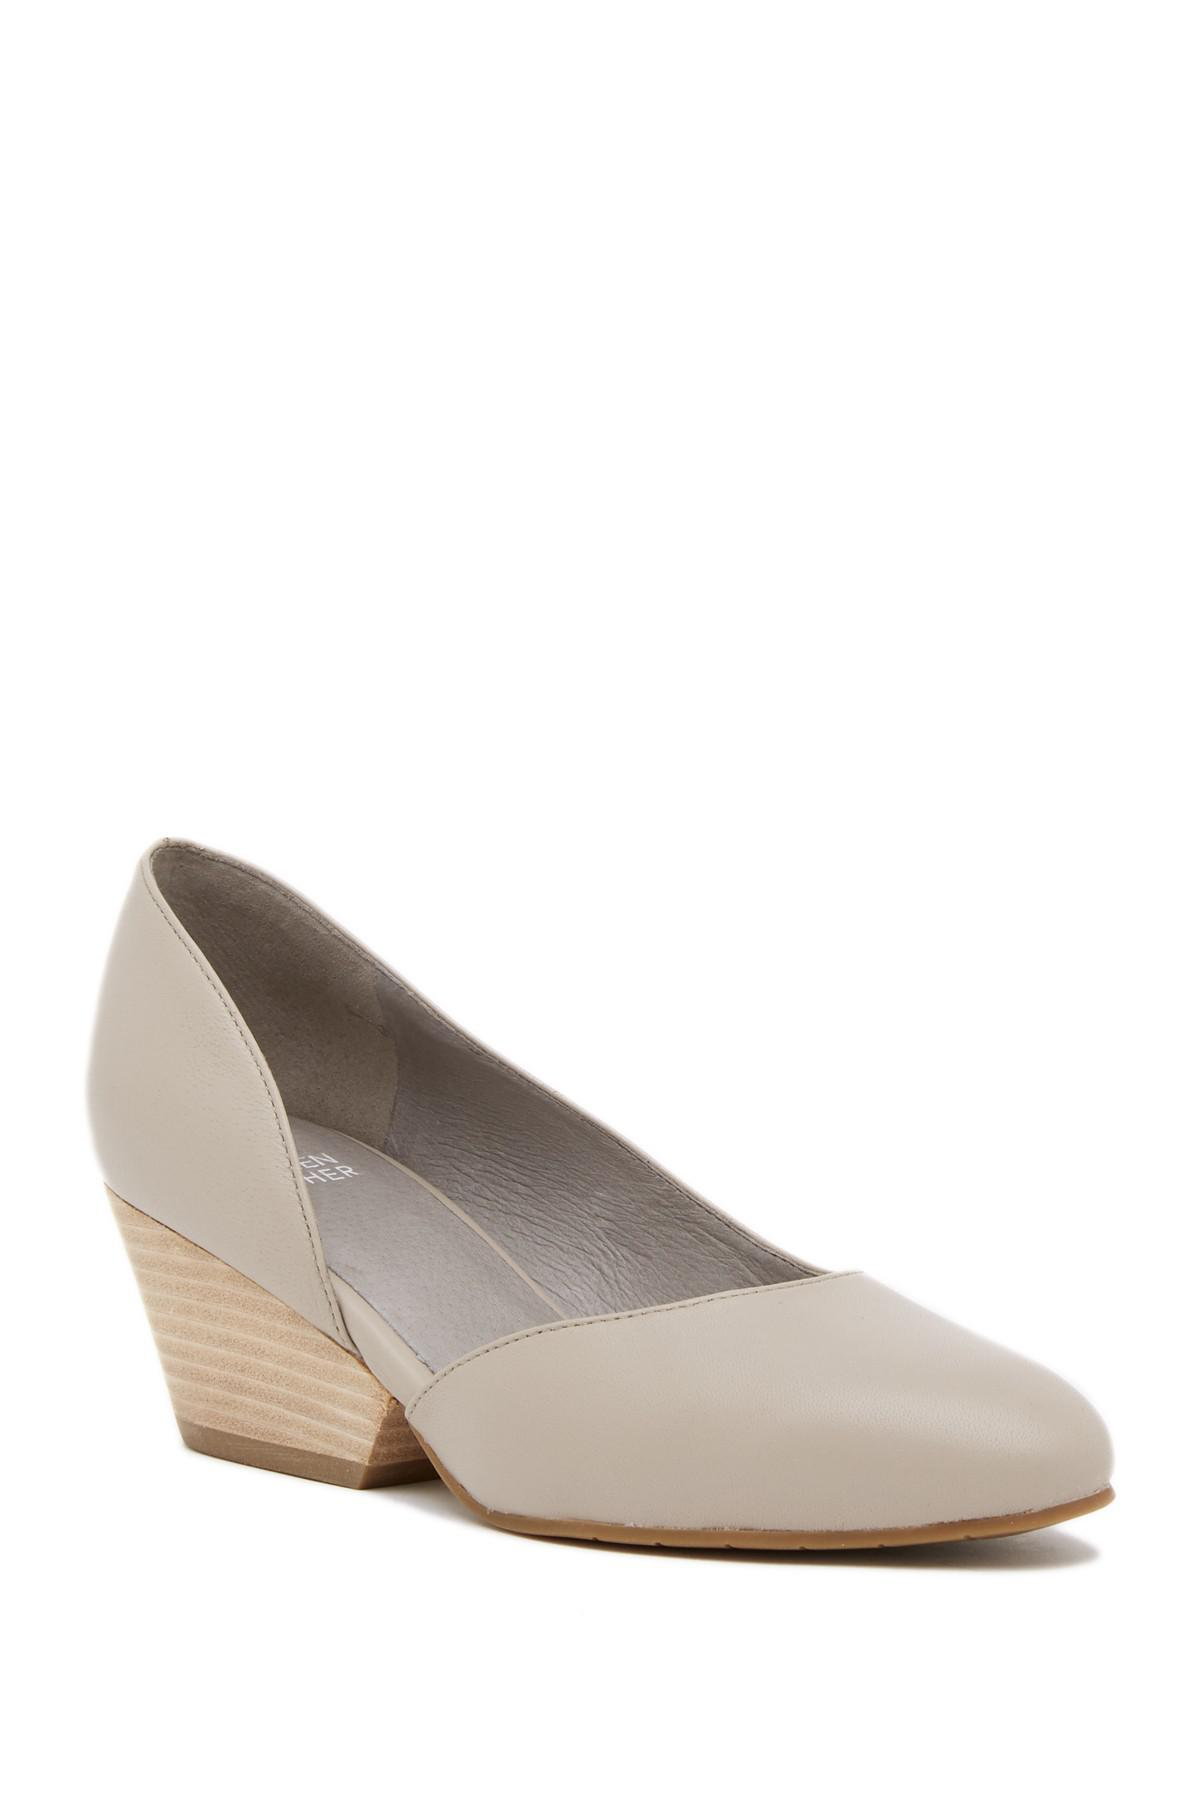 Eileen Fisher Lily Pump KR5EN0J